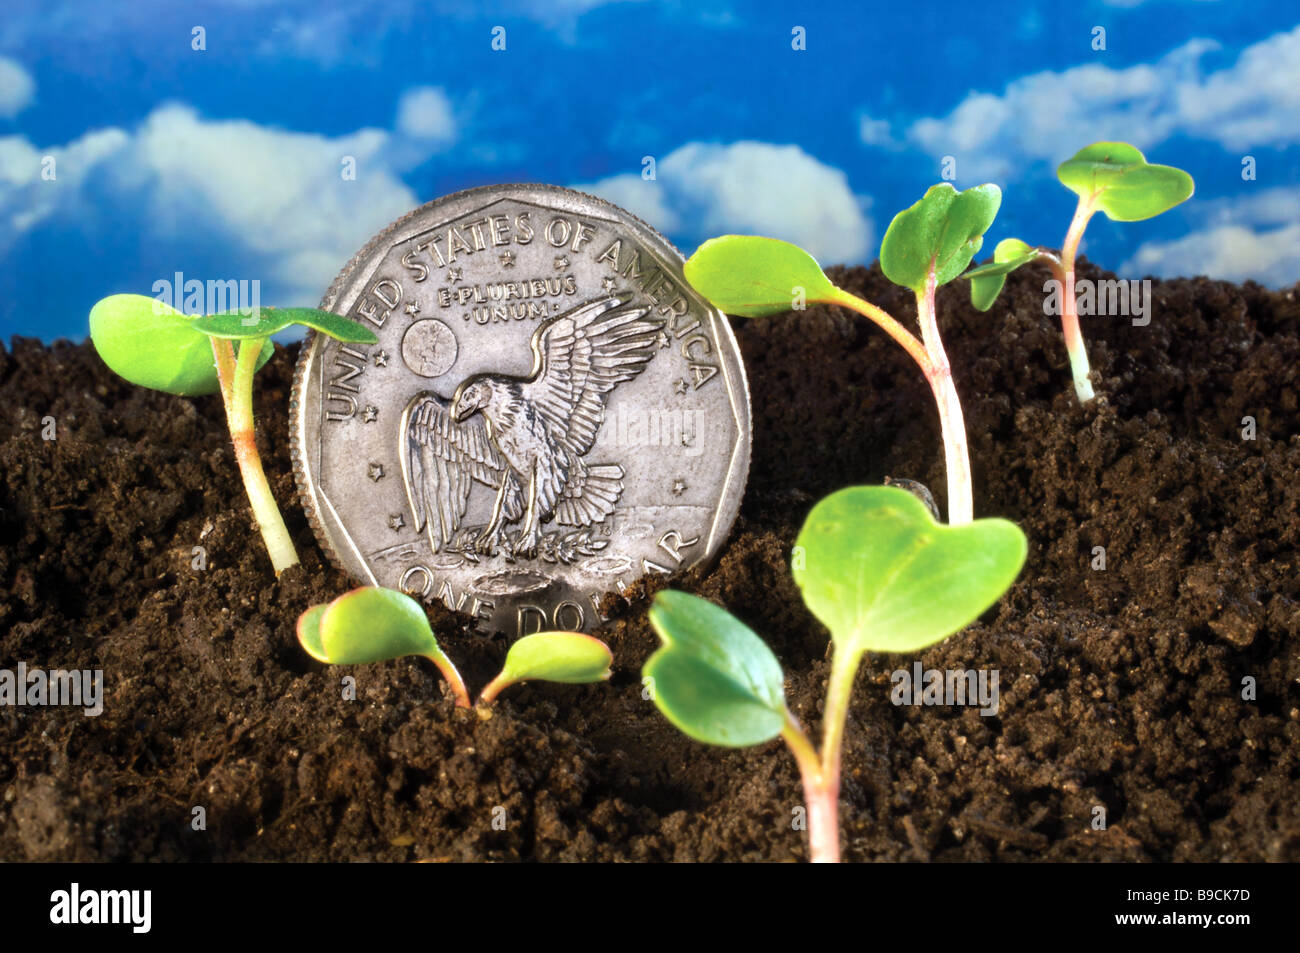 green shoots recovery US Dollar economy economic growth - Stock Image